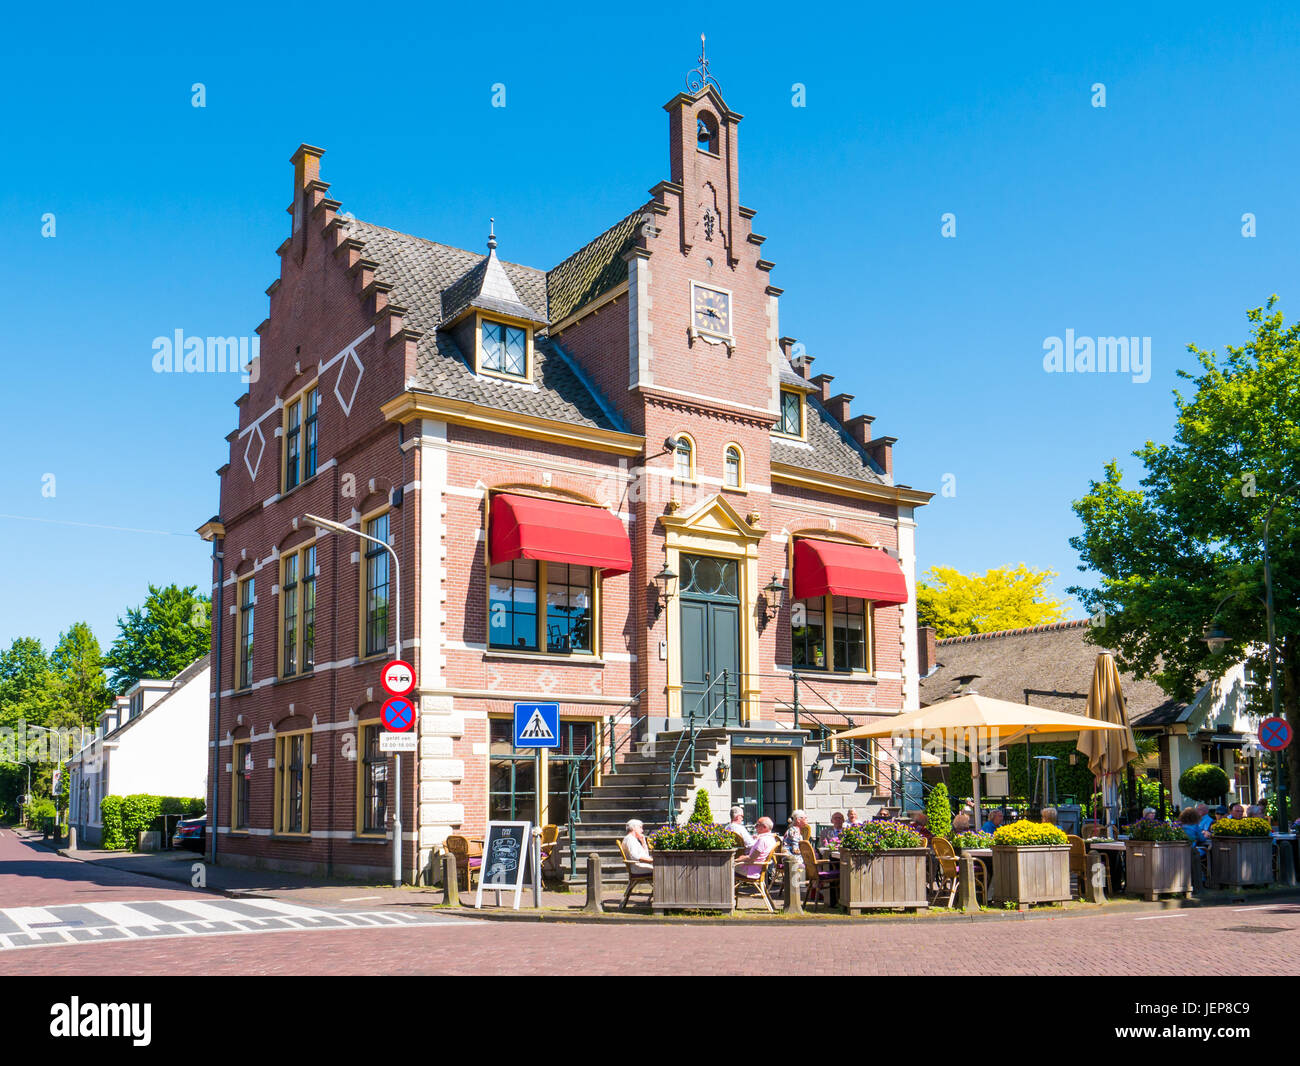 People relaxing on outdoor terrace of restaurant in former town hall of Laren, North Holland, Netherlands - Stock Image